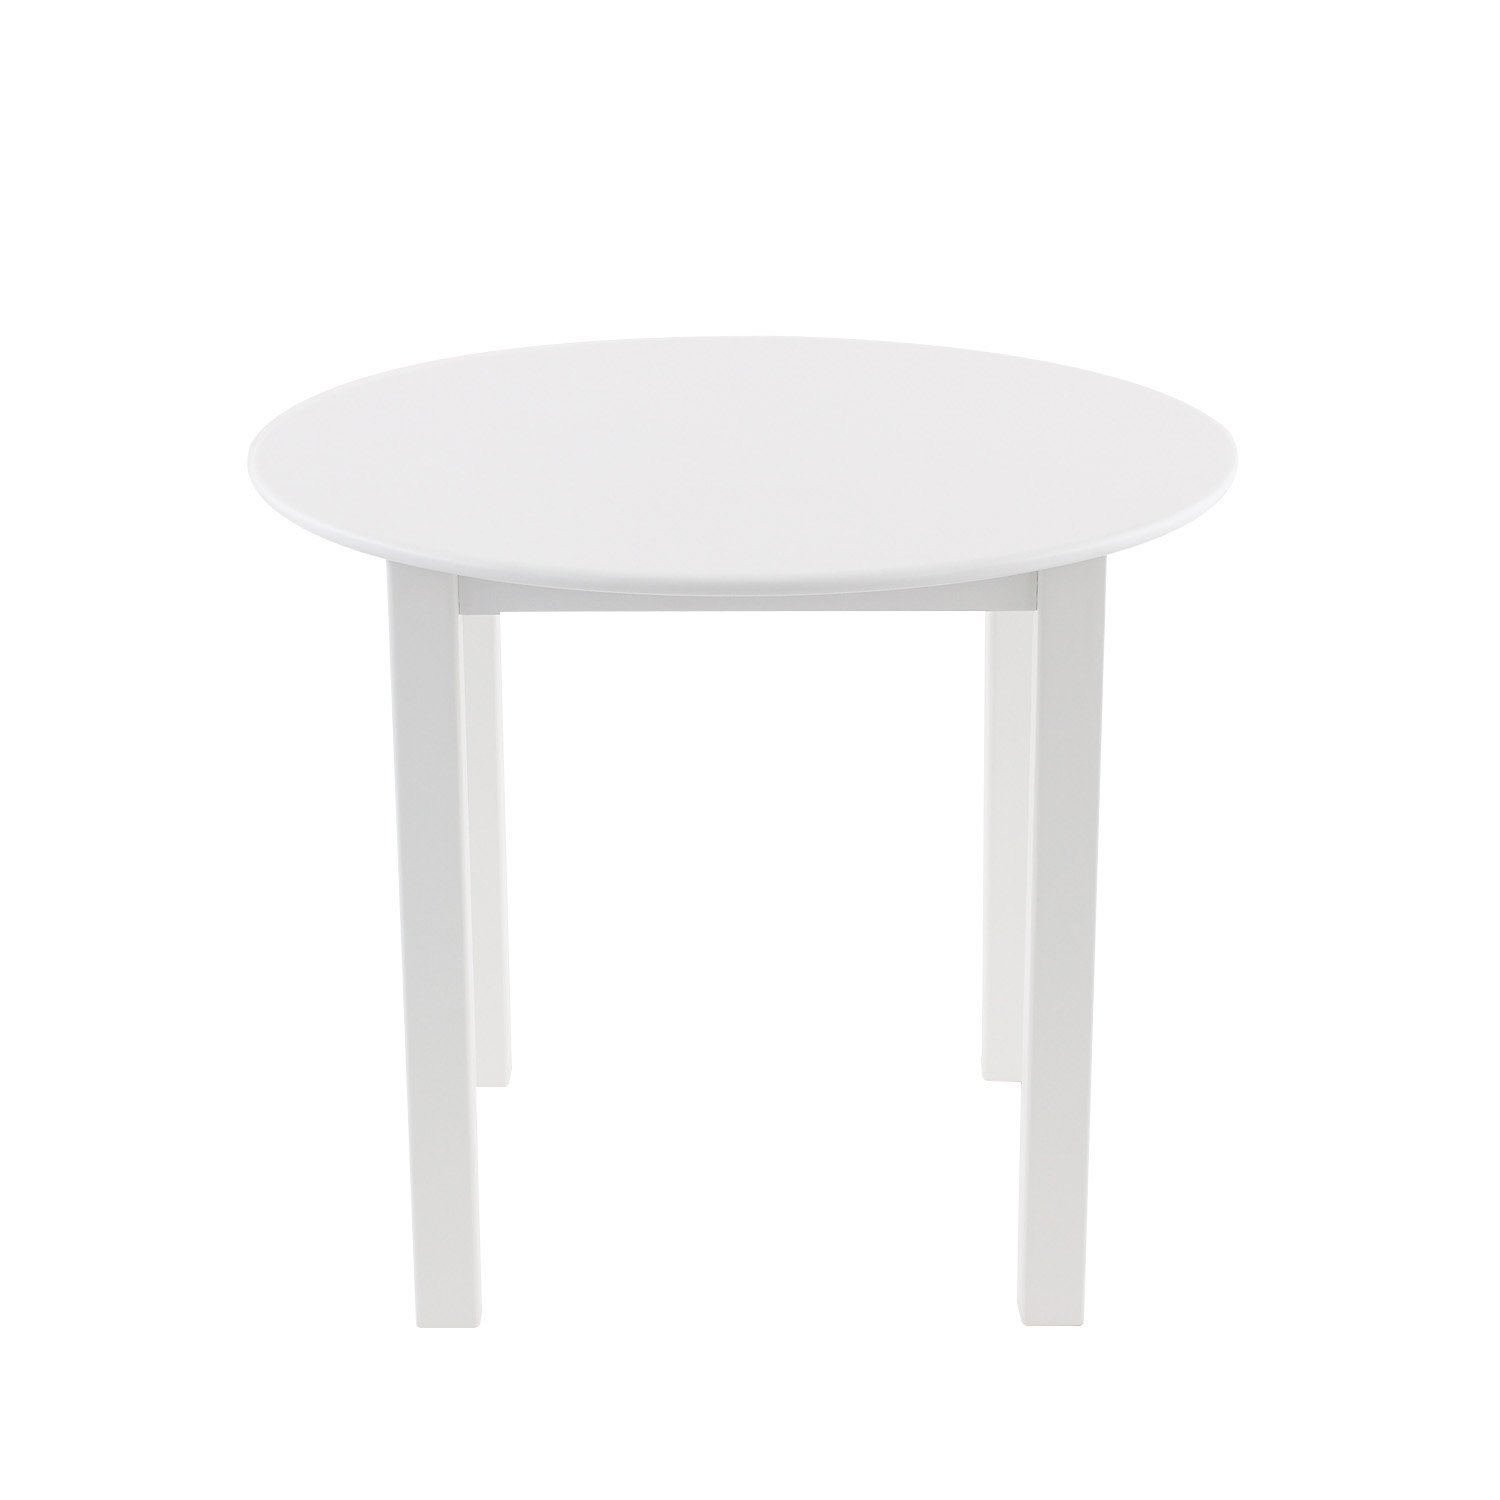 Max & Lily Natural Wood Kid and Toddler Round Table, White by Max & Lily (Image #3)